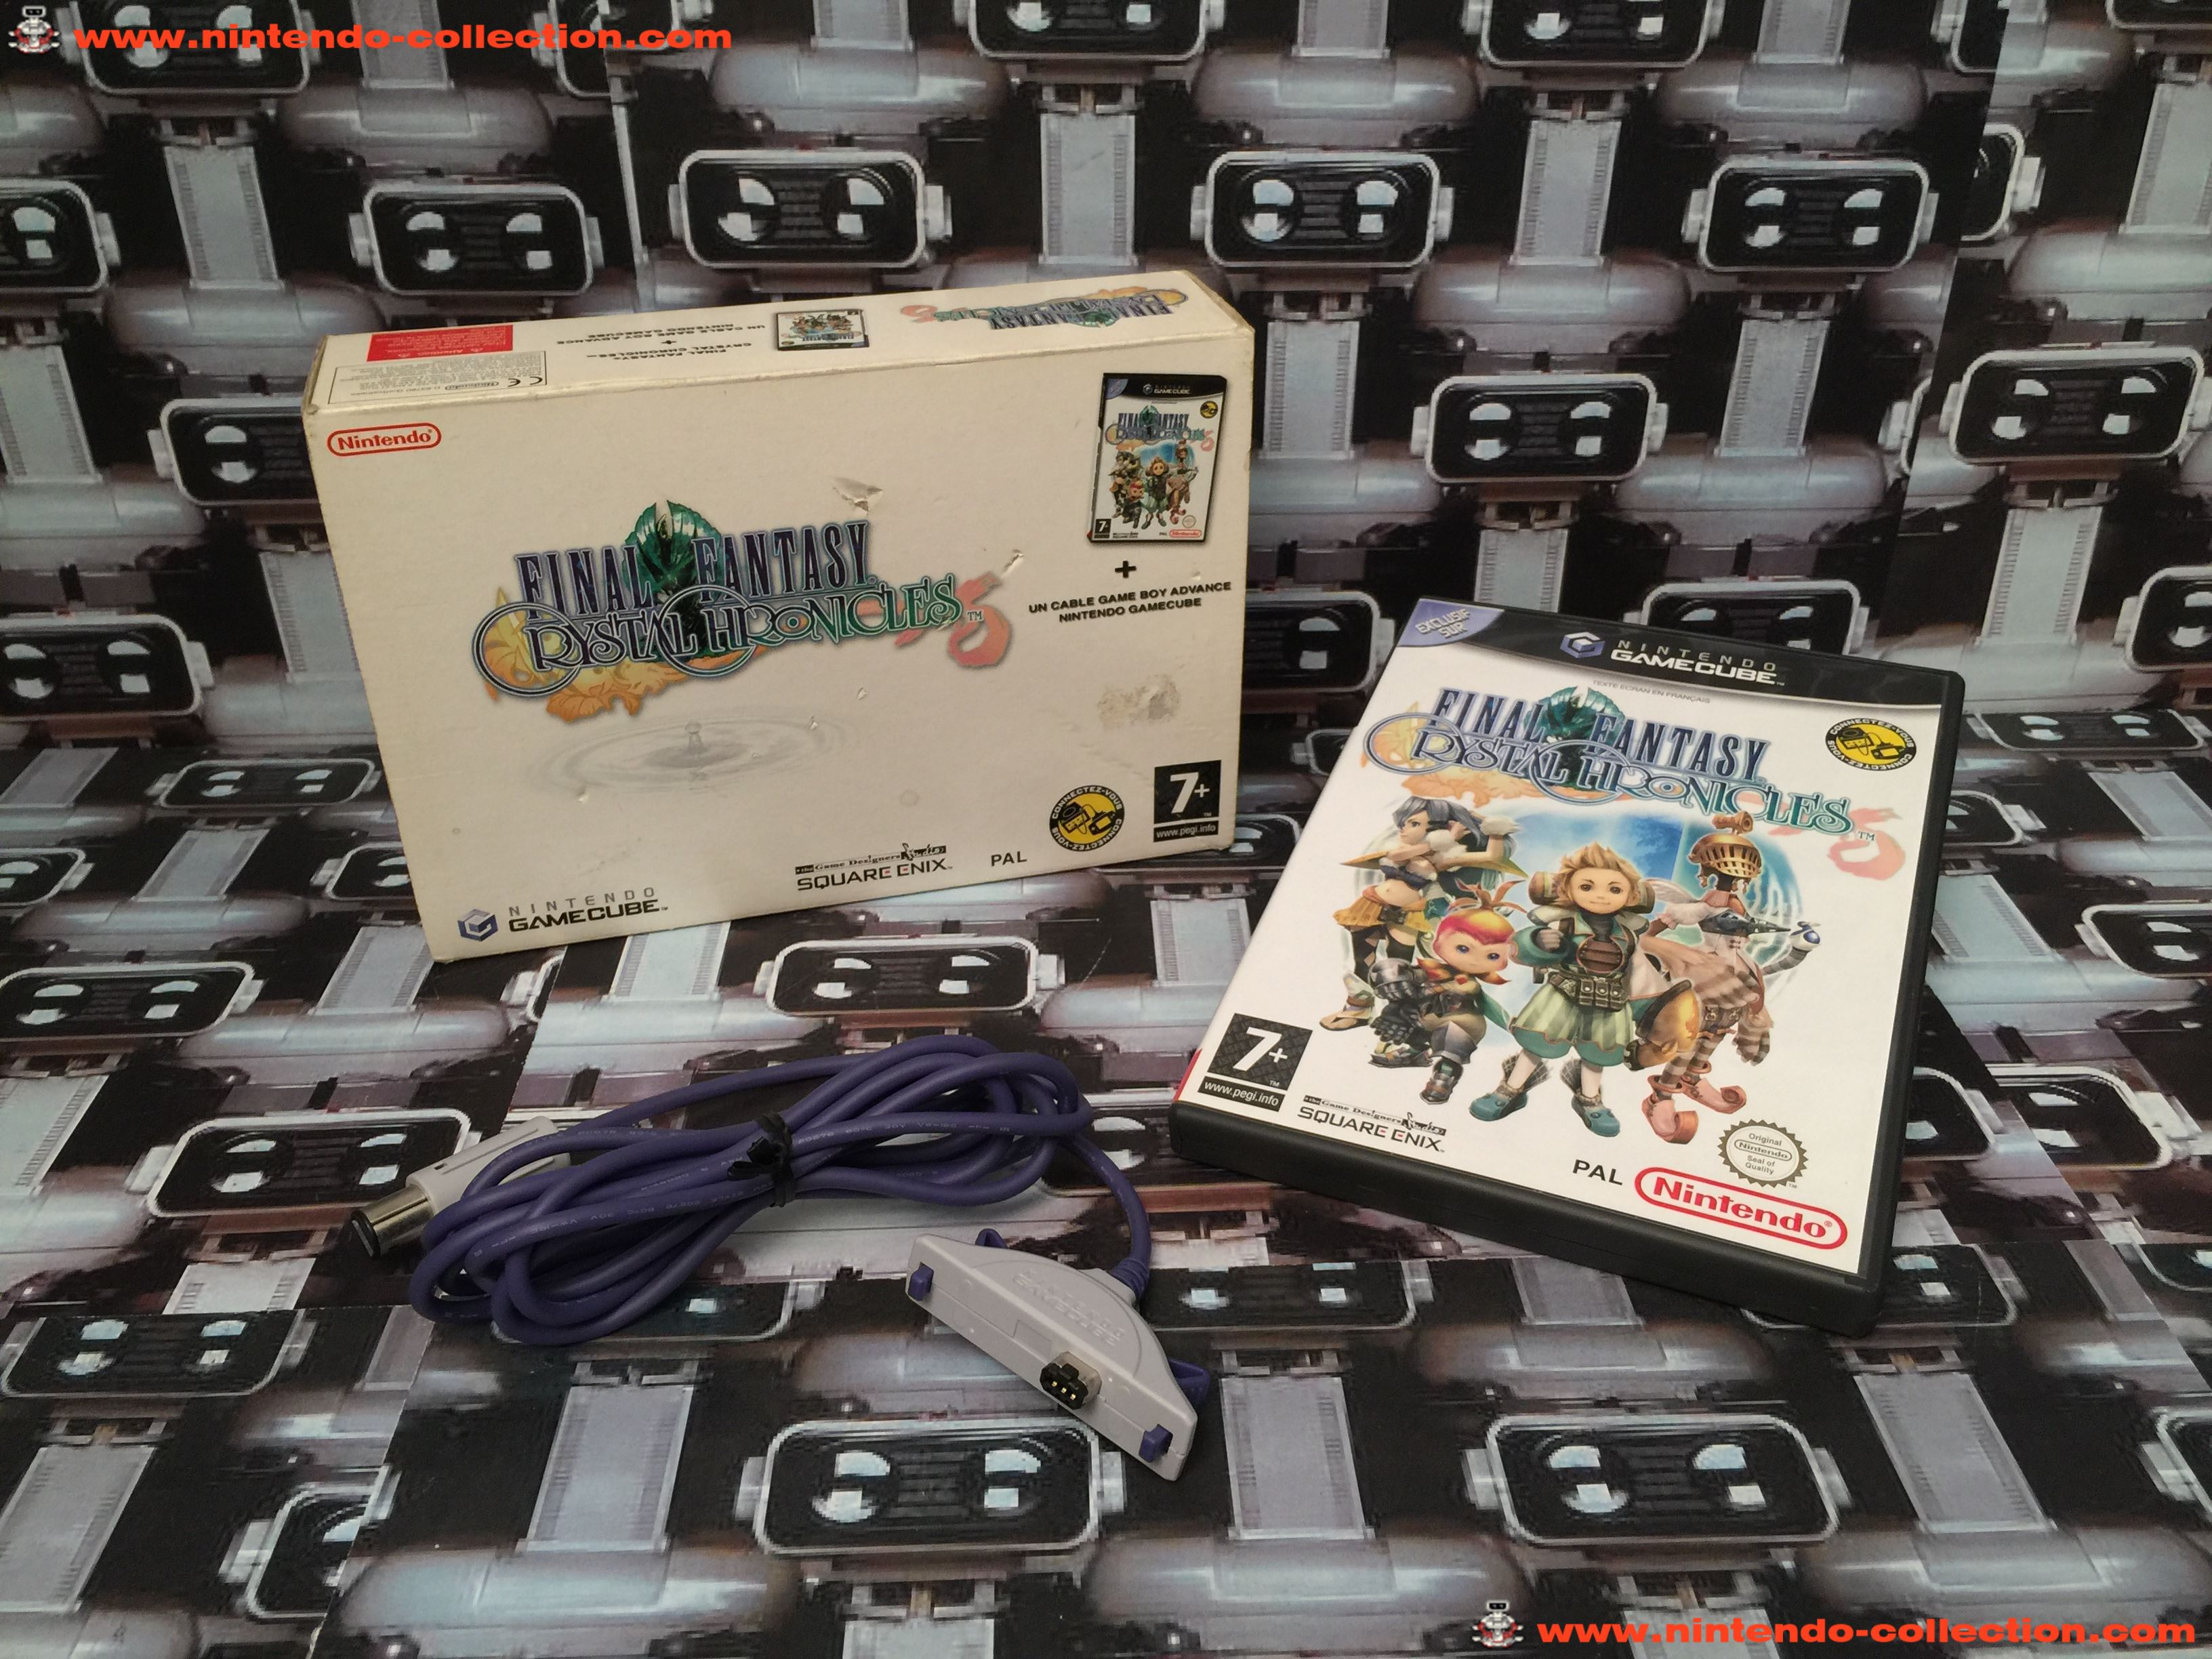 www.nintendo-collection.com - Gamecube Game Jeu Final Fantasy Chrystal Chronicles Limited Edition GB